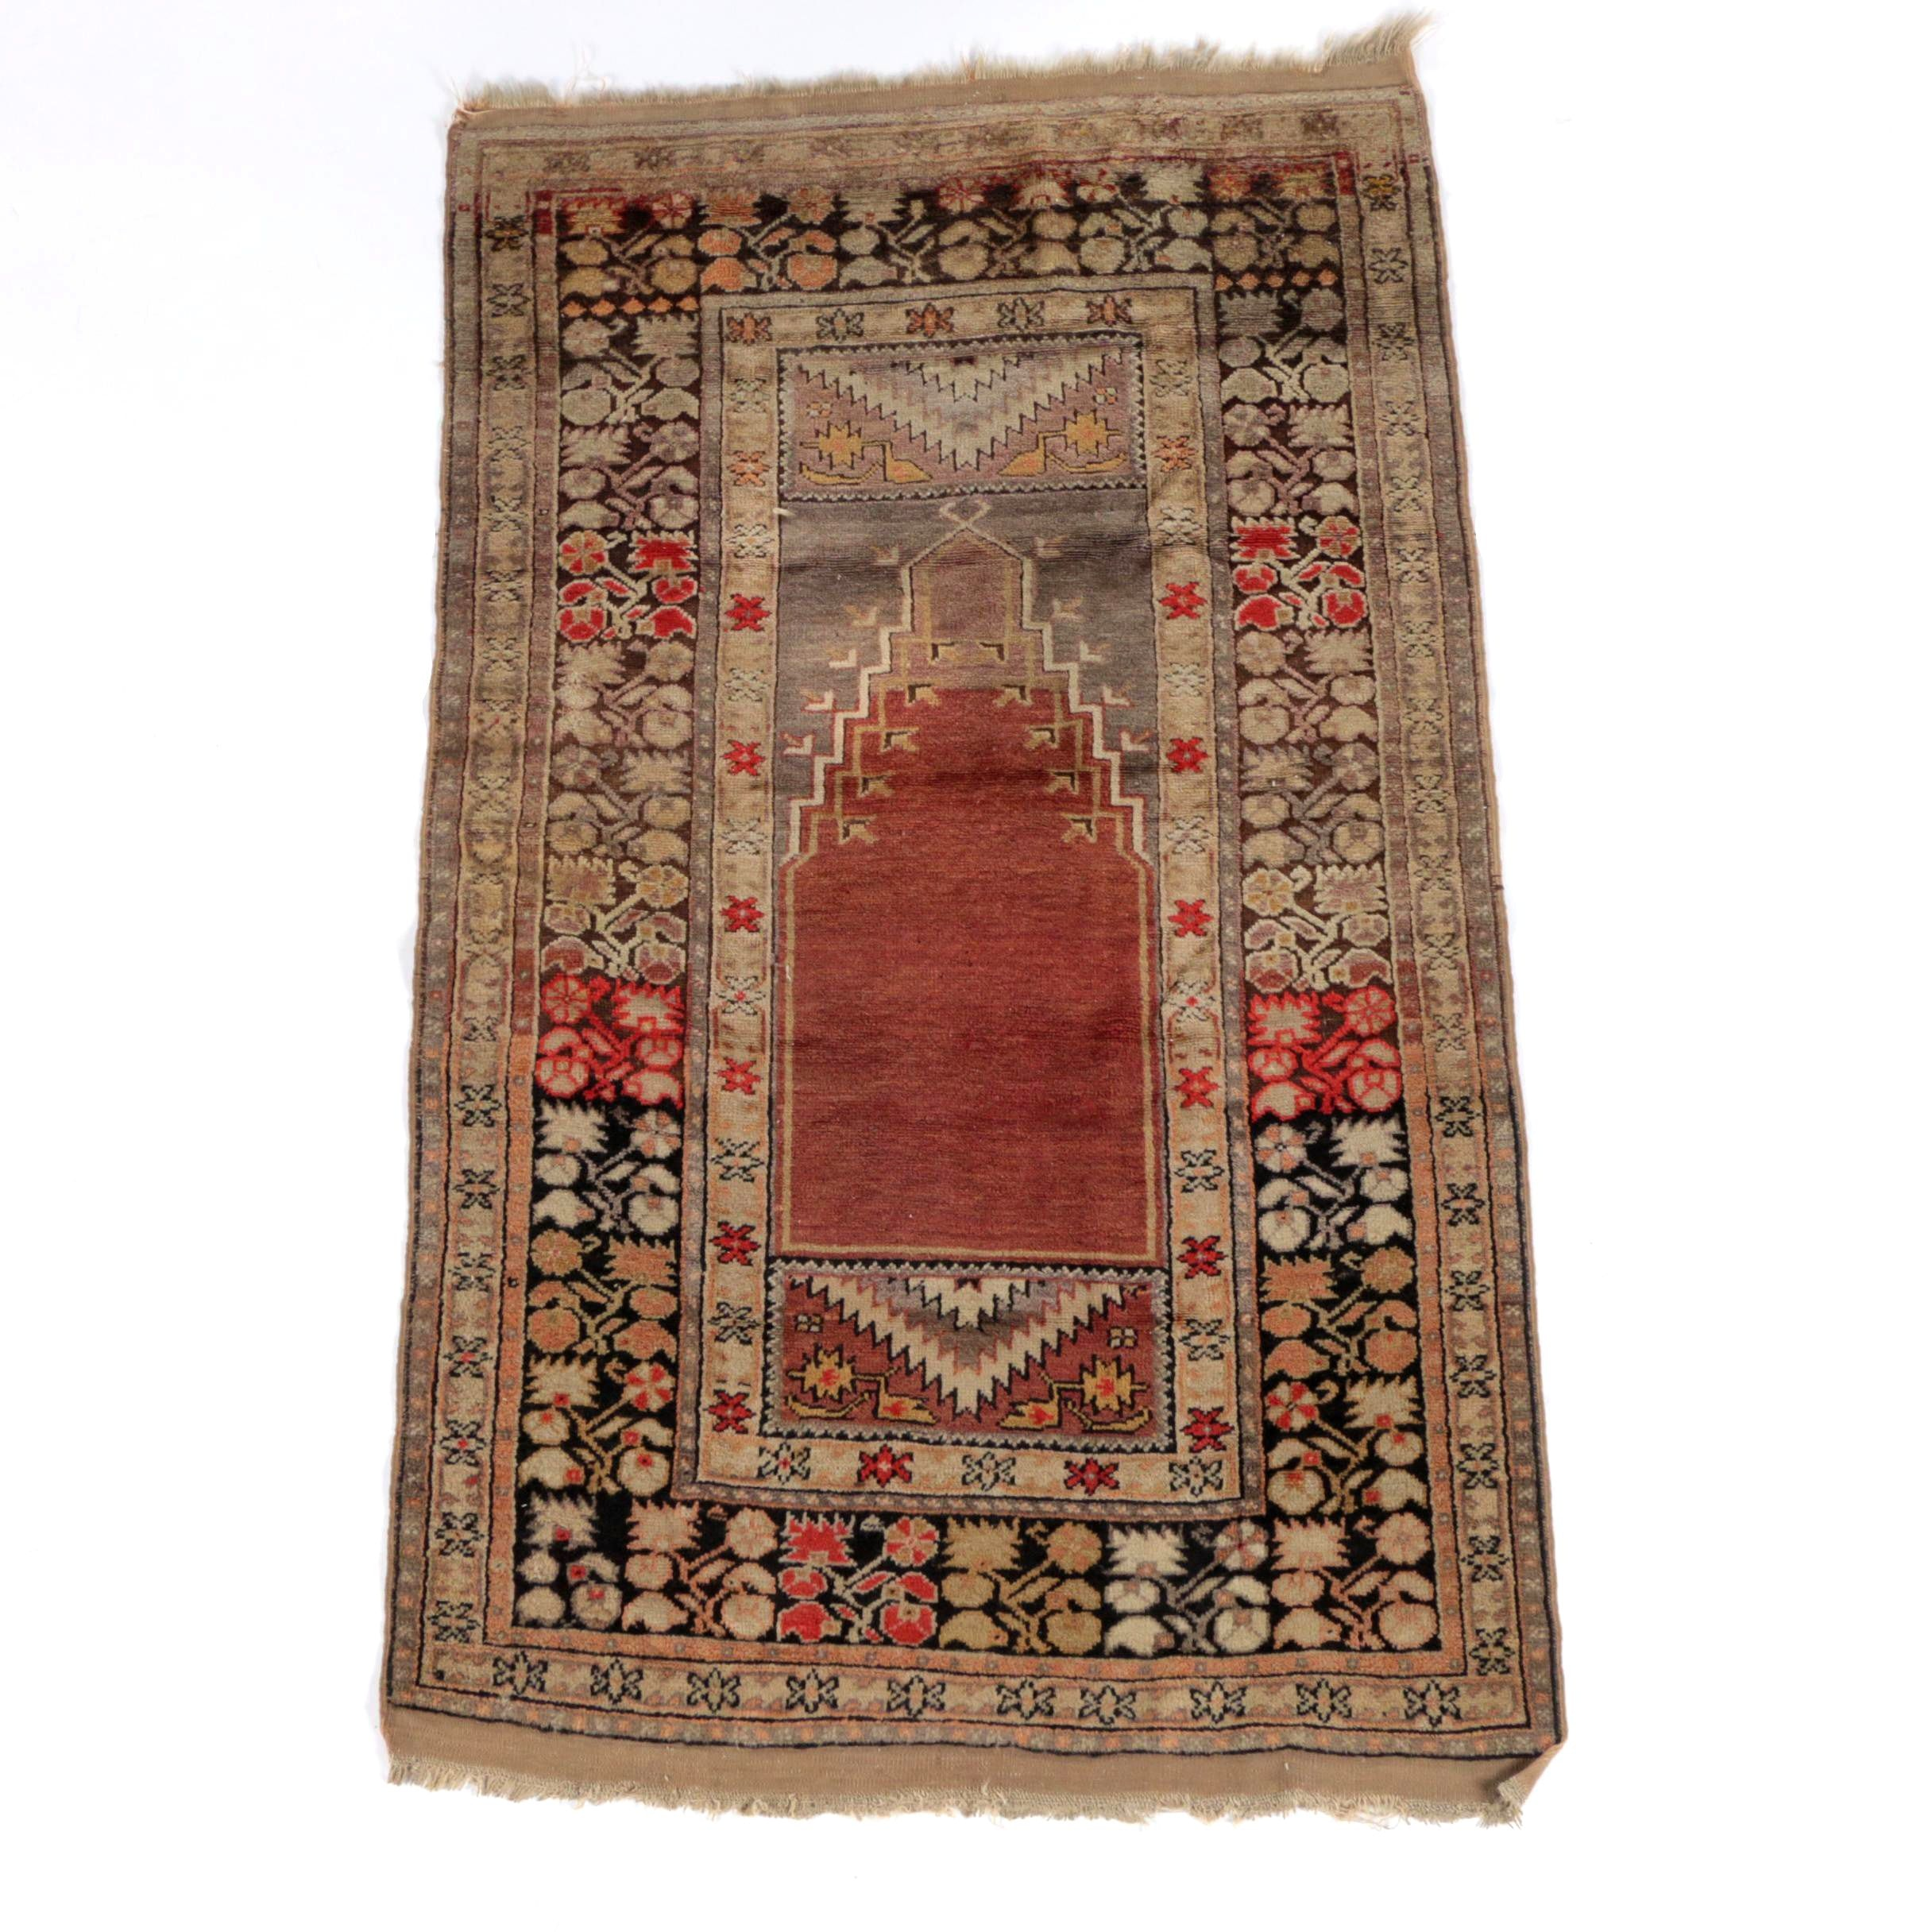 Semi Antique Hand-Knotted Anatolian Wool Prayer Rug